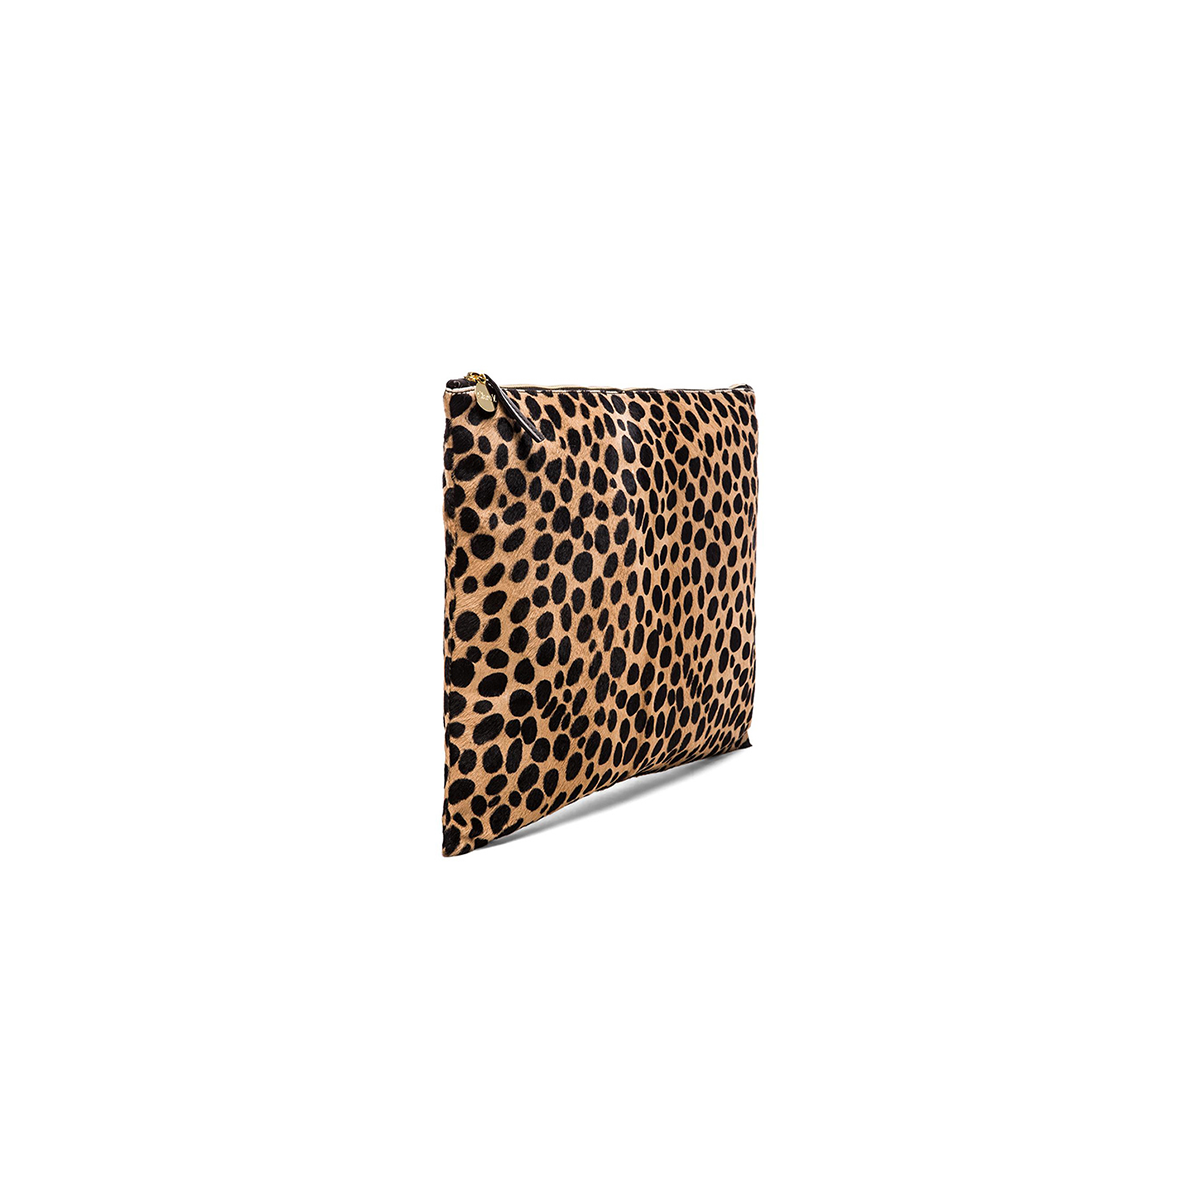 3625ad0f6161 Clare Vivier oversized leopard-print calf-hair clutch - Find Love Buy